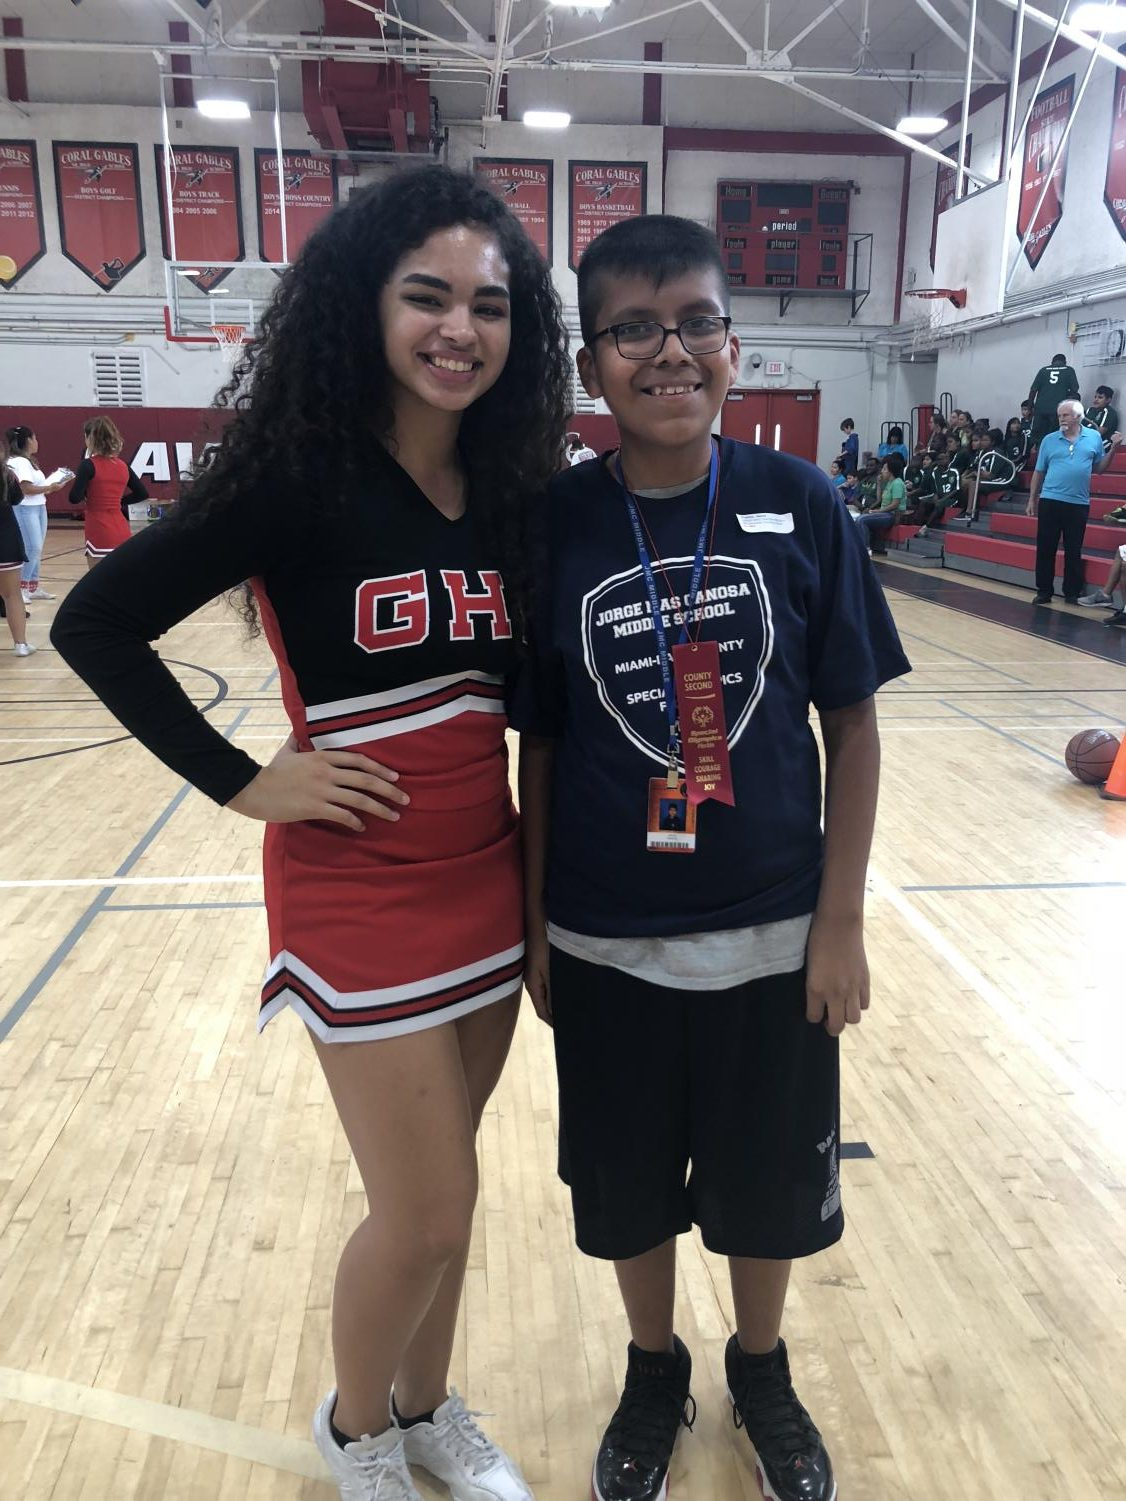 Cheerleader Melissa Rodriguez stands with eighth grader Jesus Franco from Jorge Mas Canosa Middle School at the Basketball Competition.